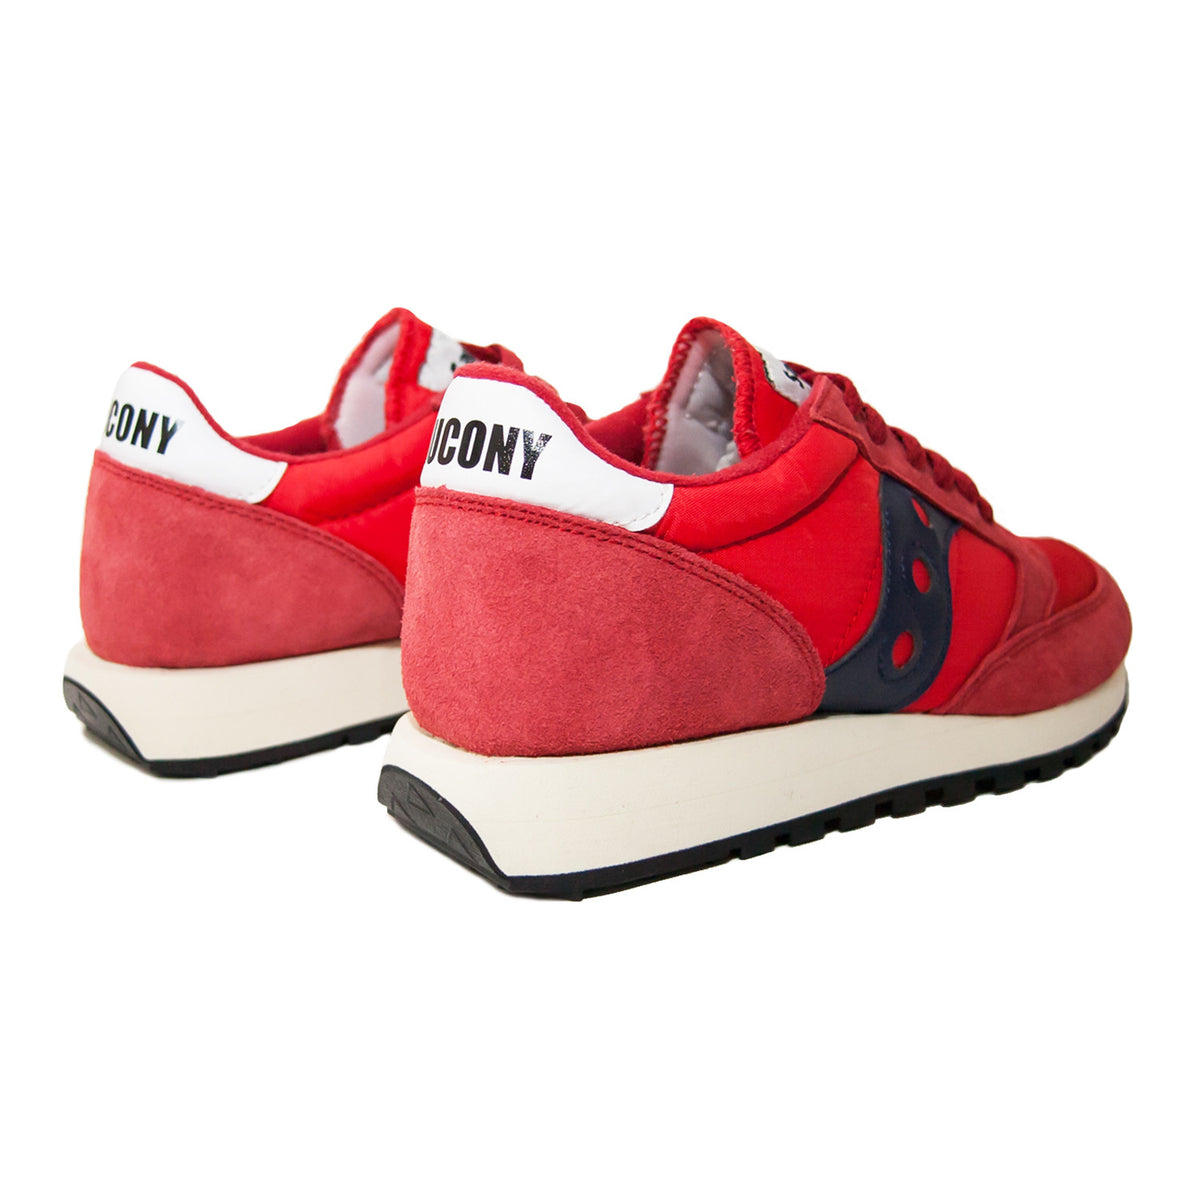 SAUCONY - JAZZ ORIGINAL - RED/NAVY